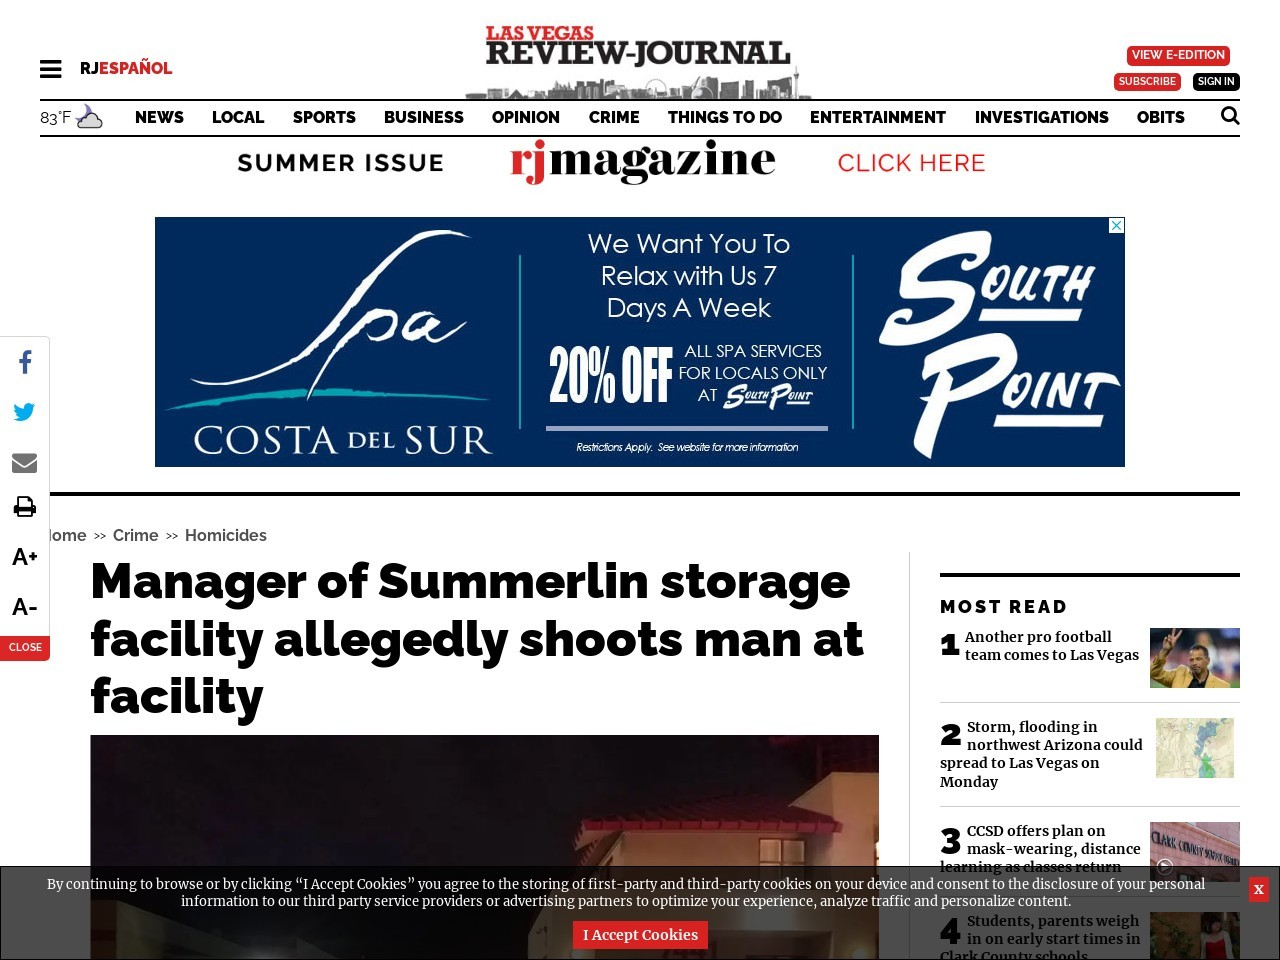 Manager of Summerlin storage facility allegedly shoots man at facility